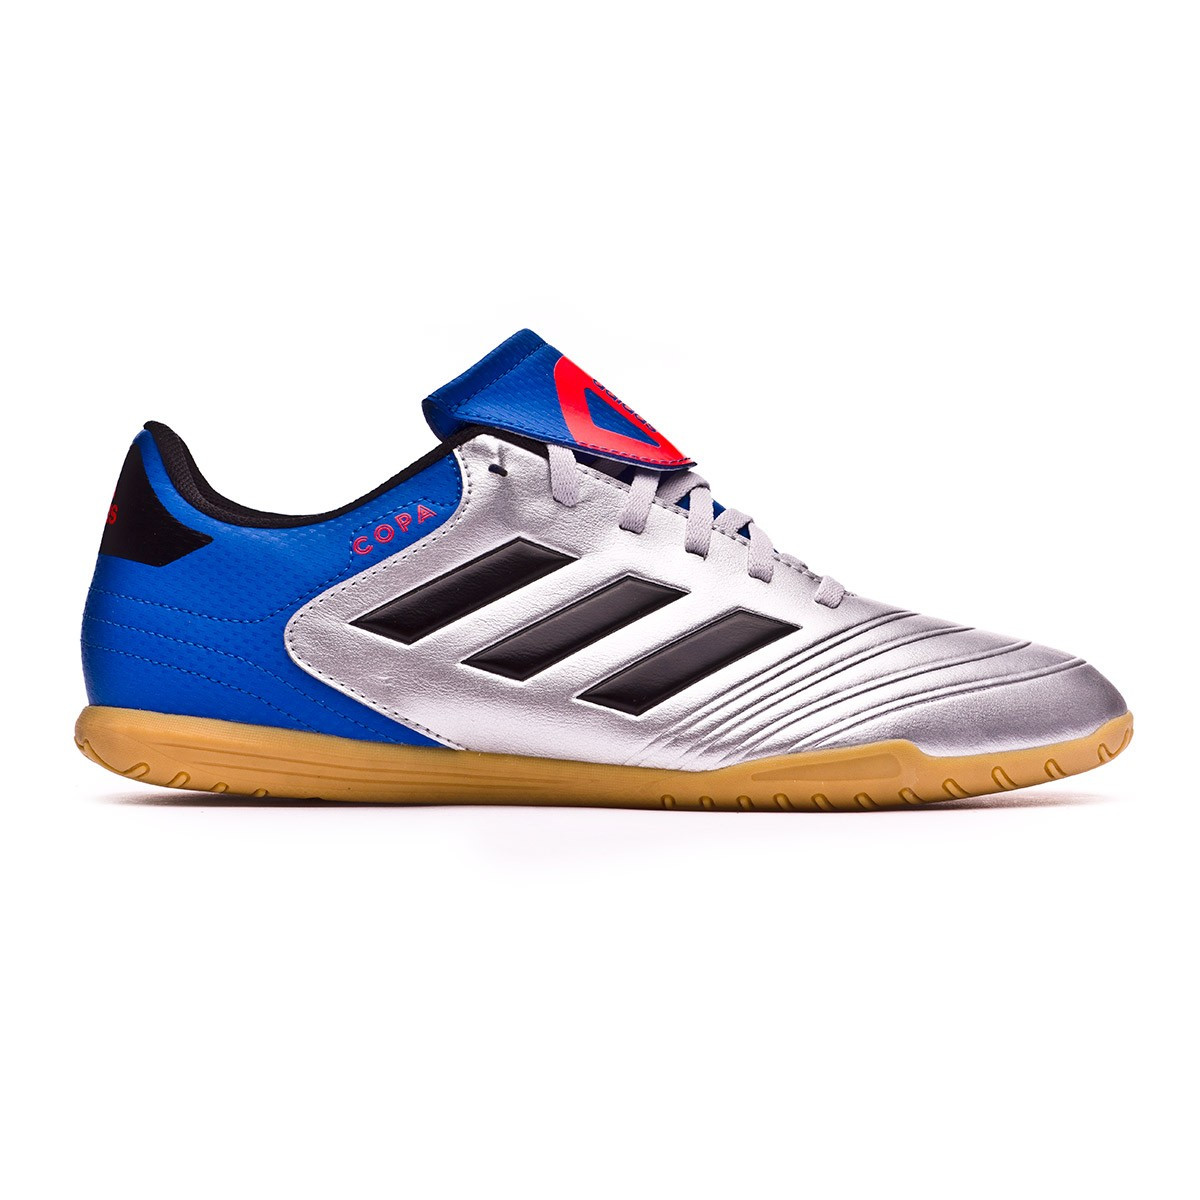 size 40 f3746 c1ae0 Futsal Boot adidas Copa Tango 18.4 IN Silver metallic-Core black-Football  blue - Football store Fútbol Emotion